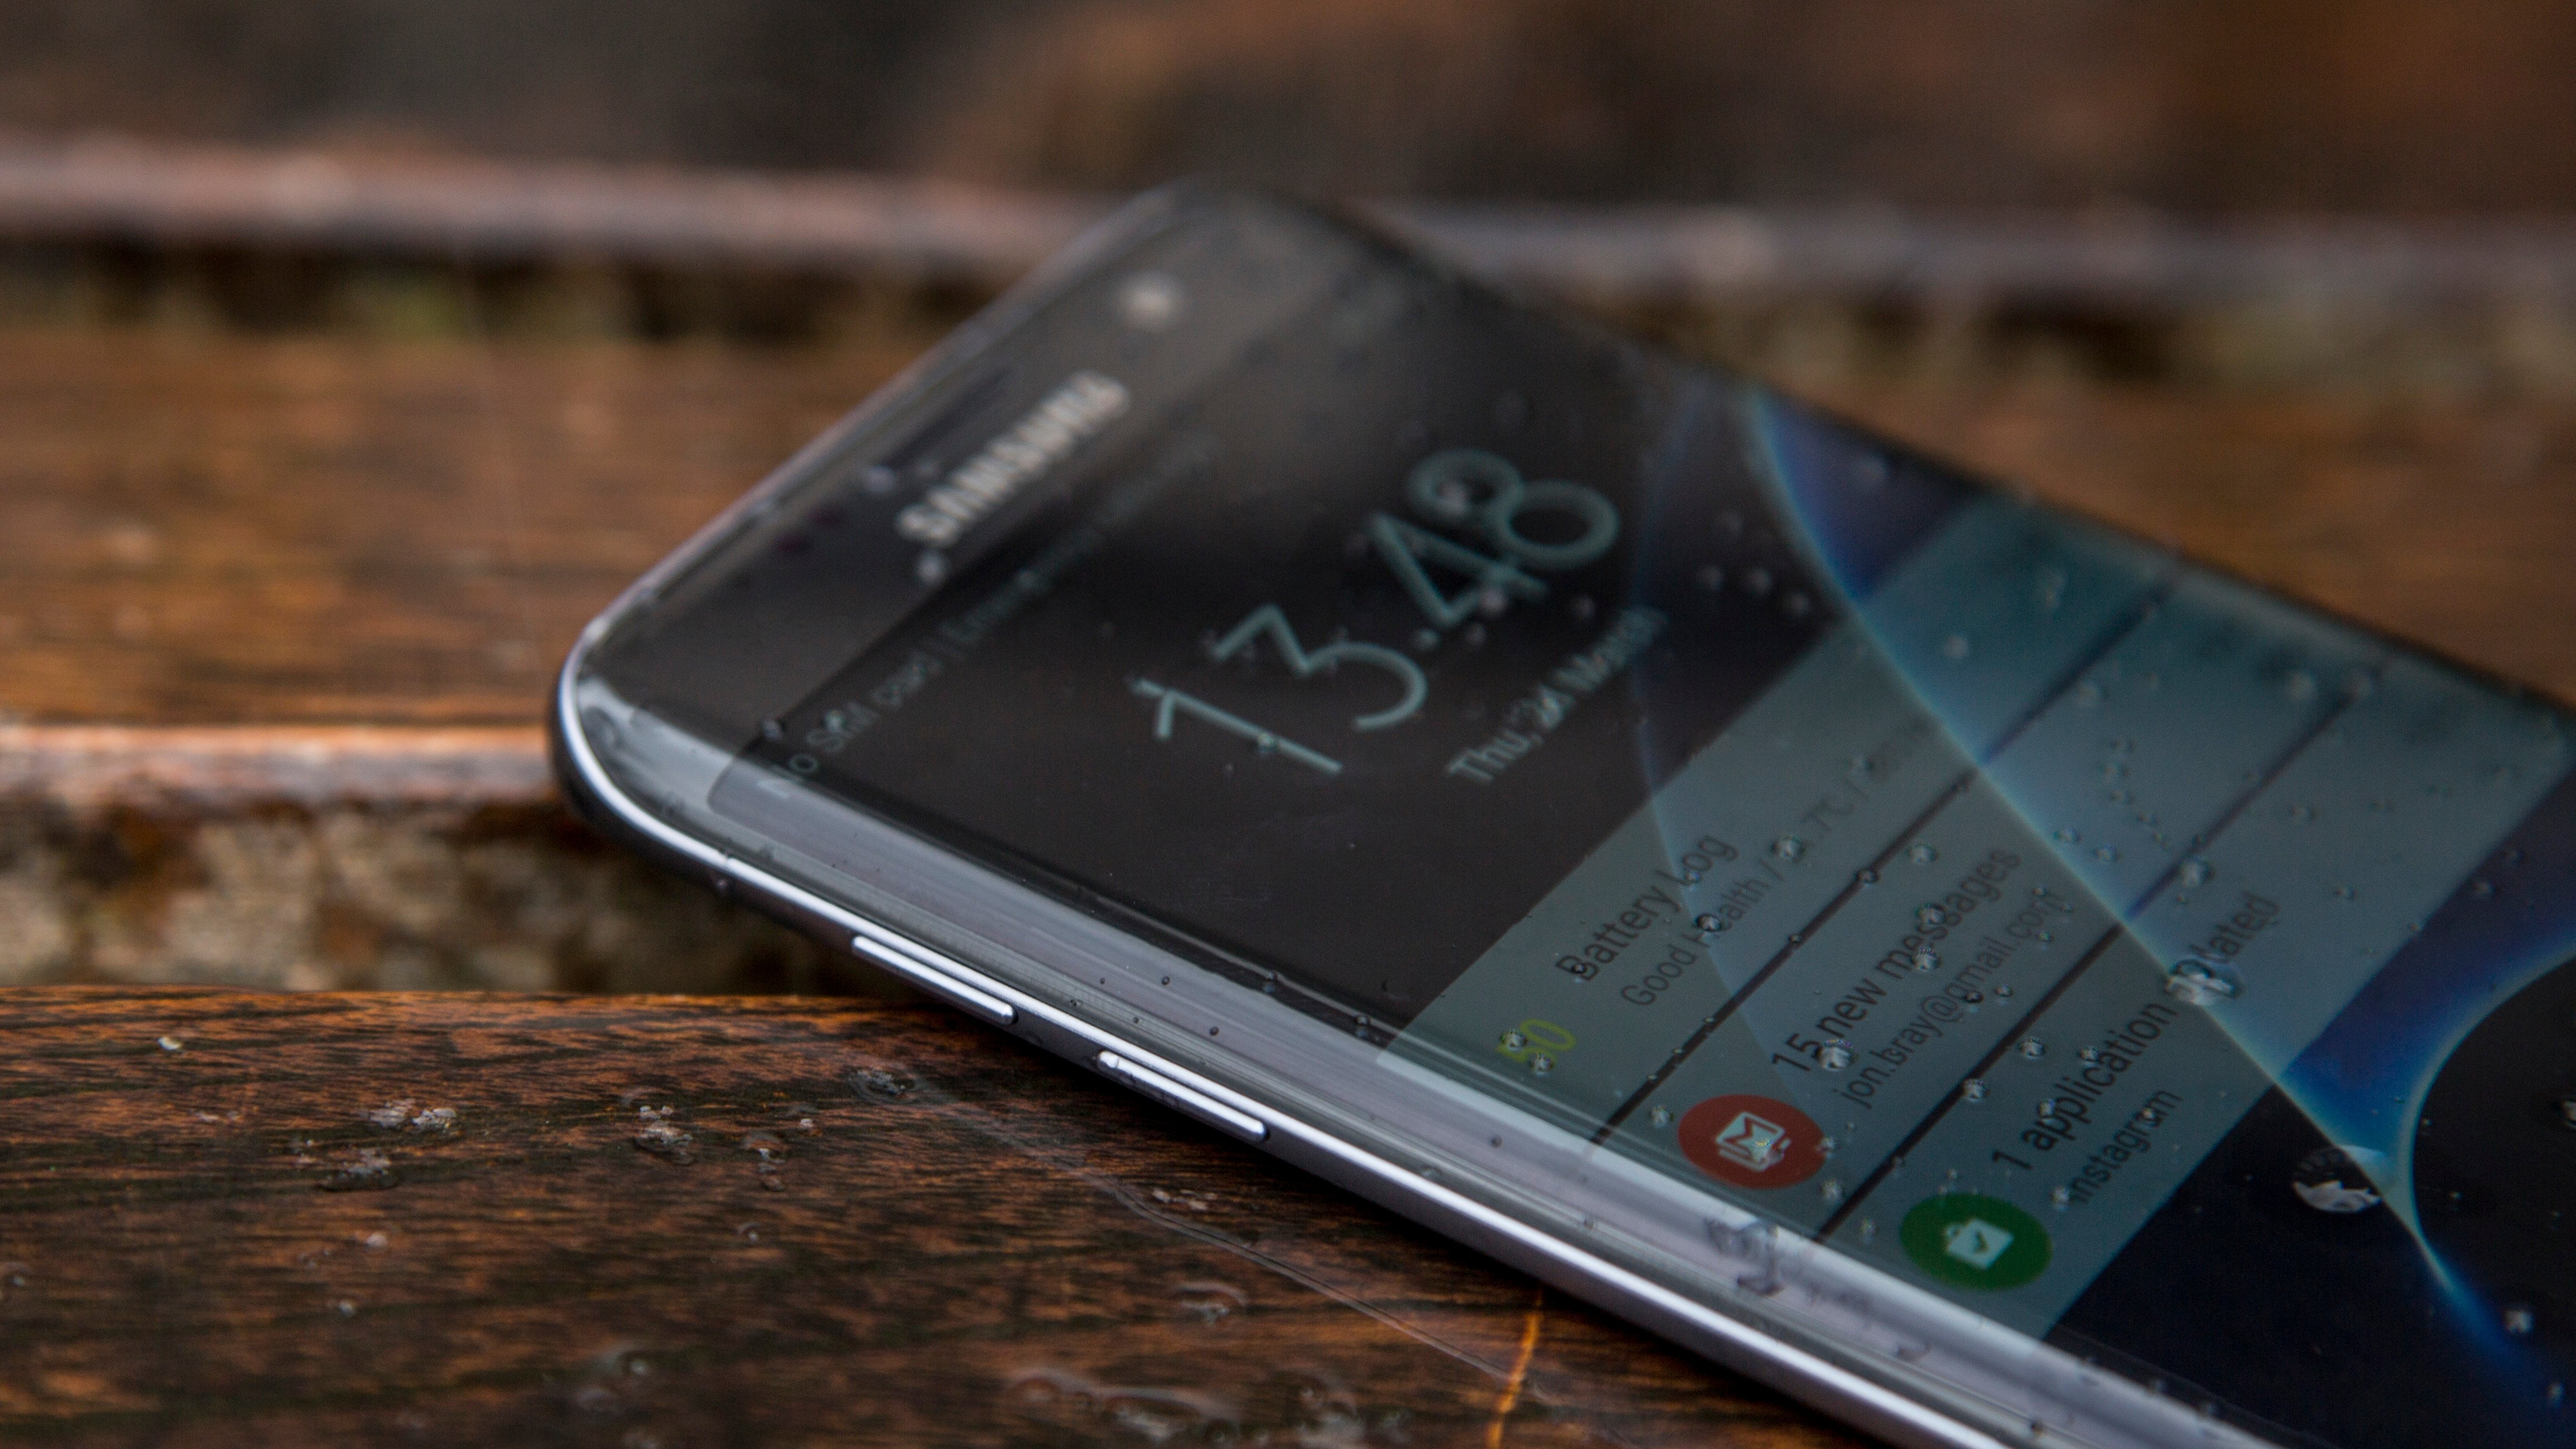 Samsung Galaxy S7 Edge review: Now only £355 and with